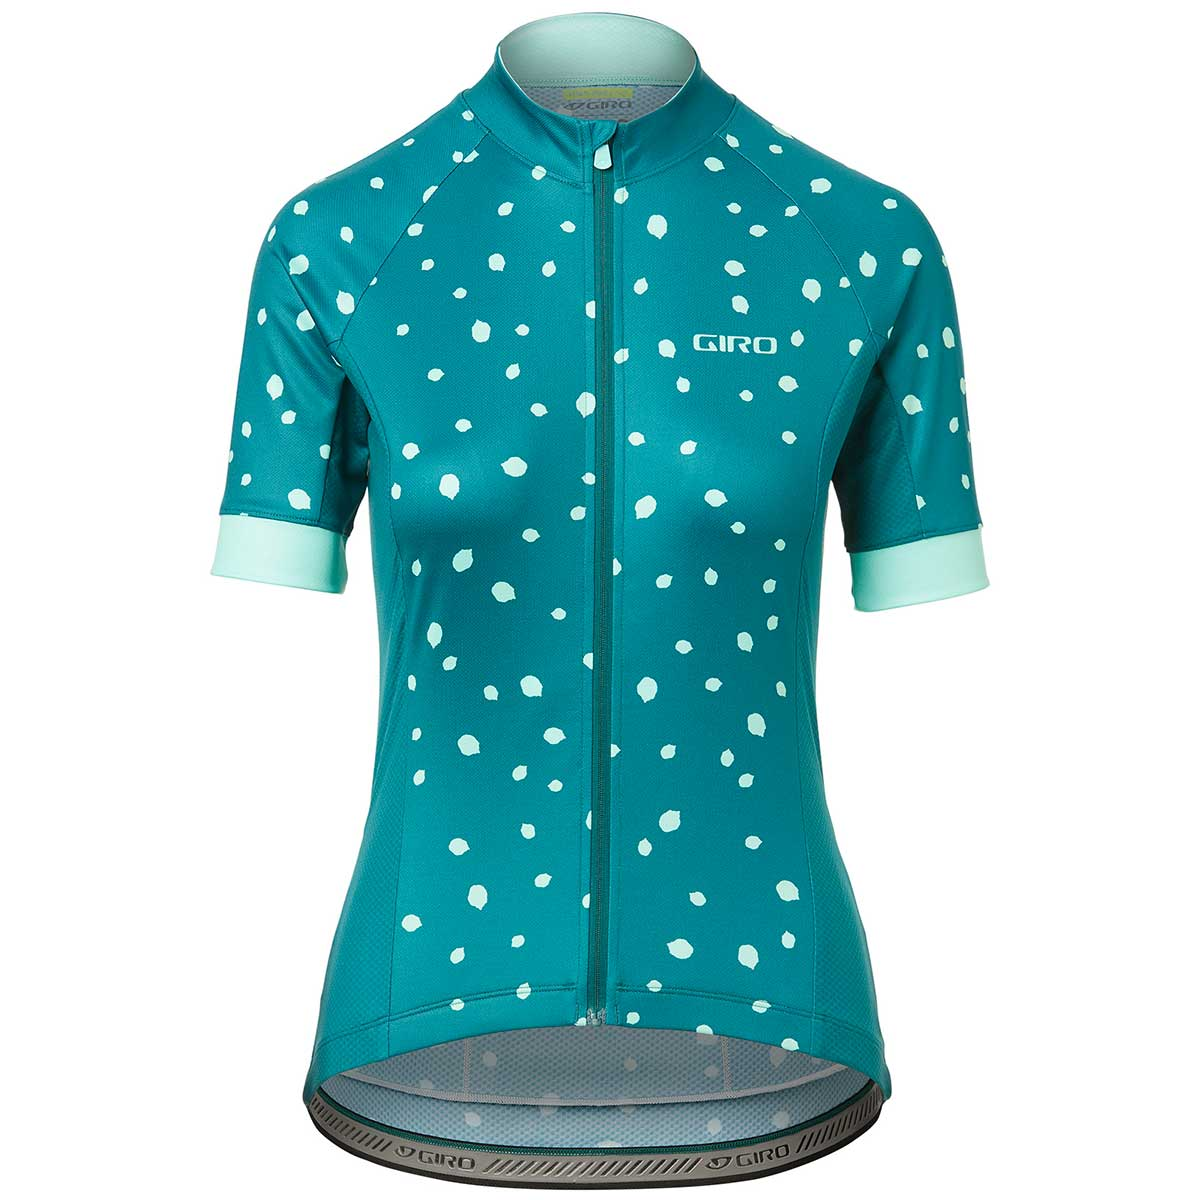 Giro women's Chrono Sport Jersey in True Spruce Blossom front view